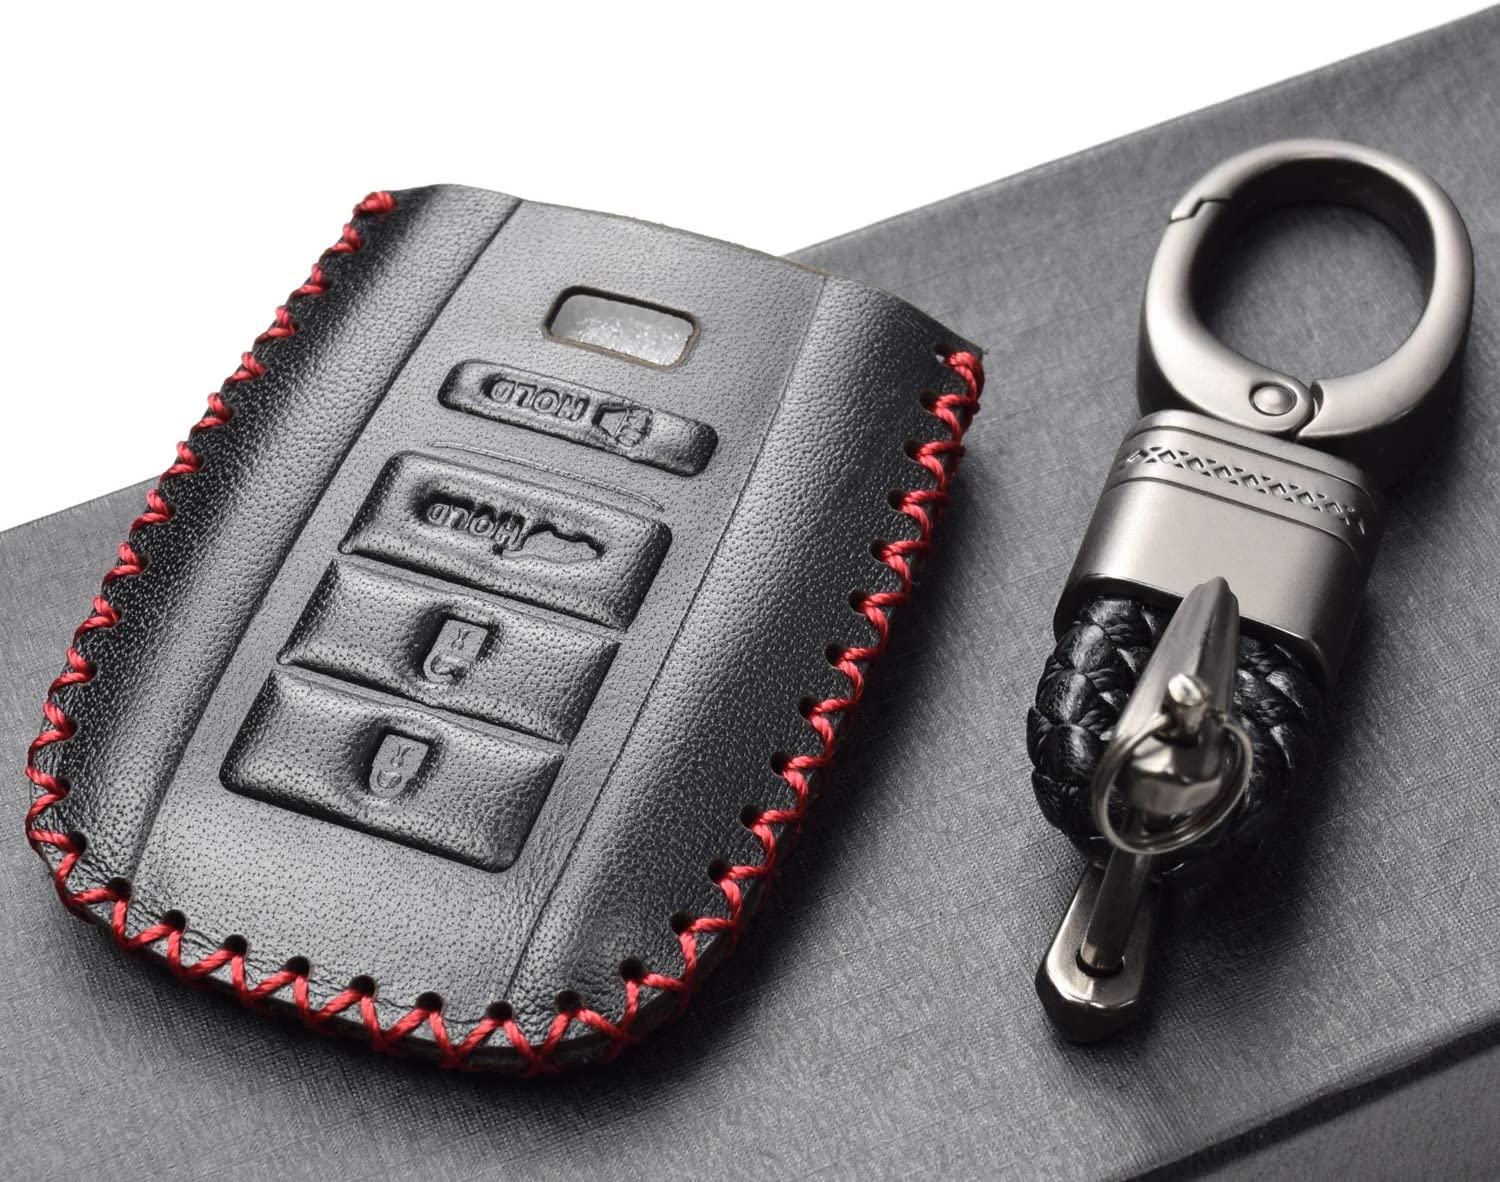 ACURA TLX ACURA ILX Vitodeco Genuine Leather Smart Key Keyless Remote Entry Fob Case Cover with Key Chain for ACURA RLX 4 Buttons, Black